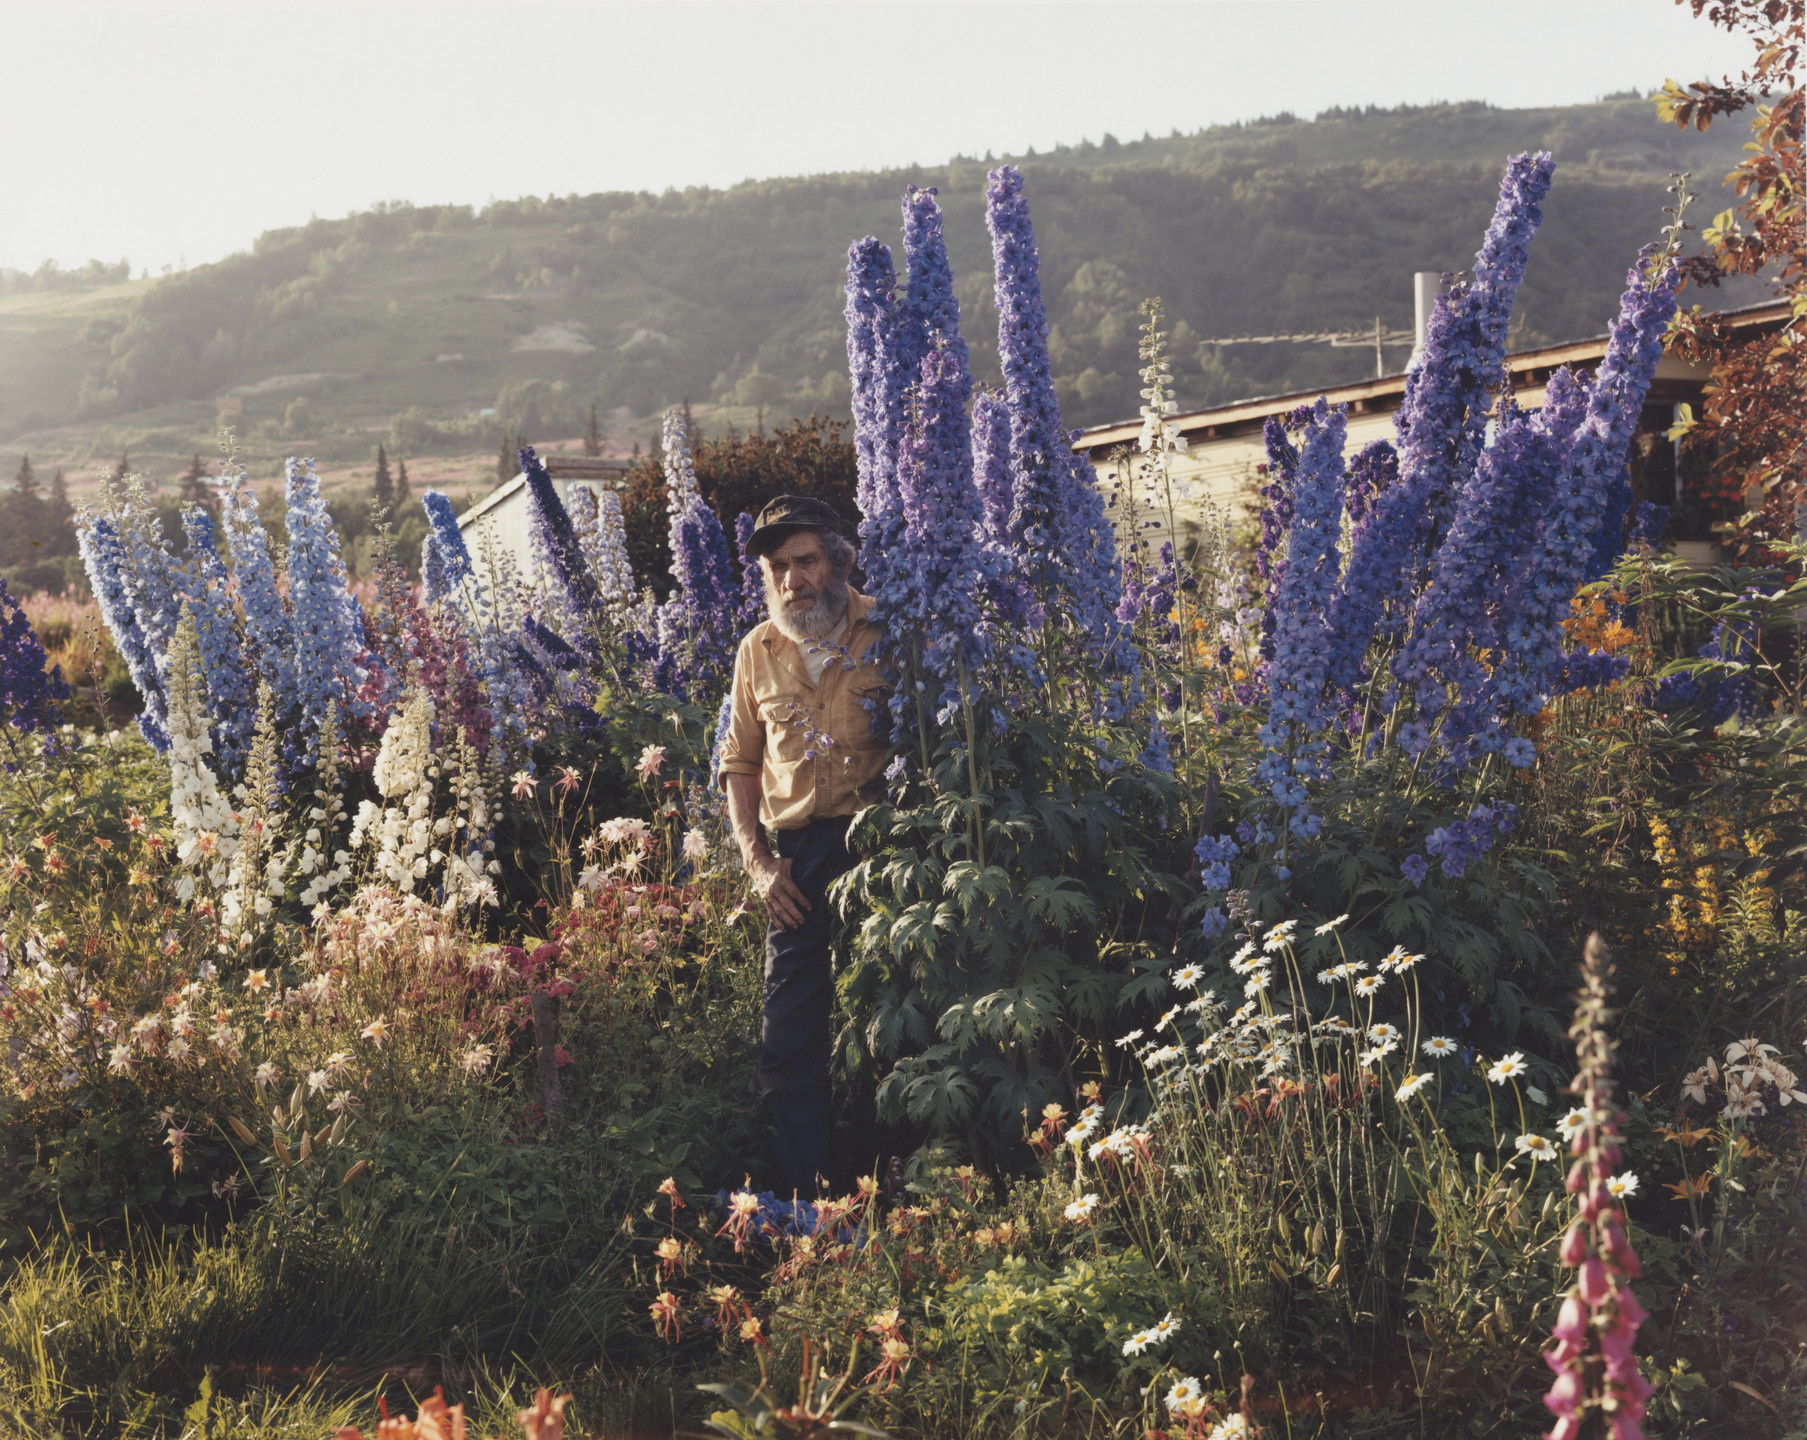 Joel Sternfeld. A Blind Man in His Garden, Homer, Alaska. July 1984